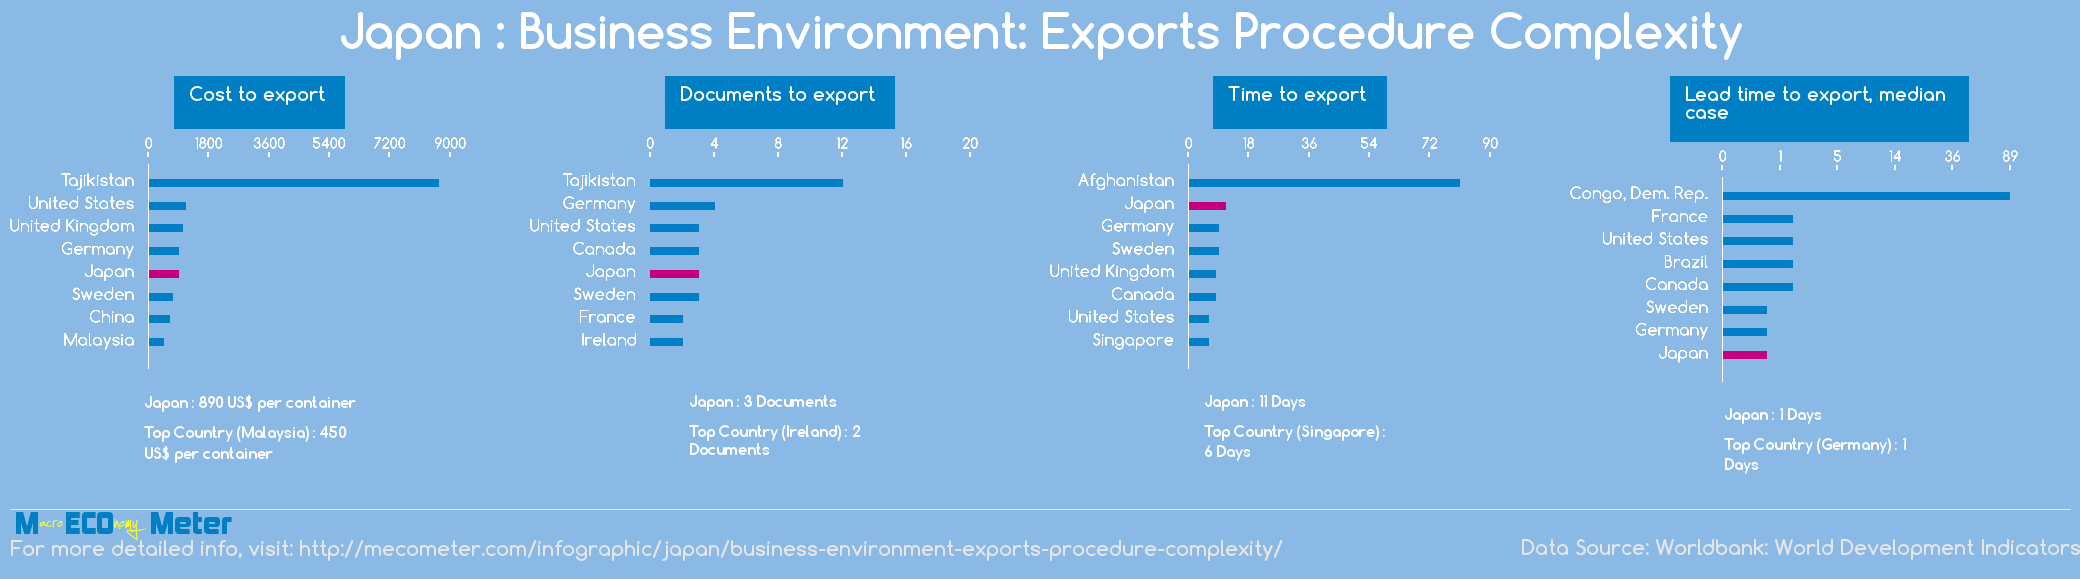 Japan : Business Environment: Exports Procedure Complexity